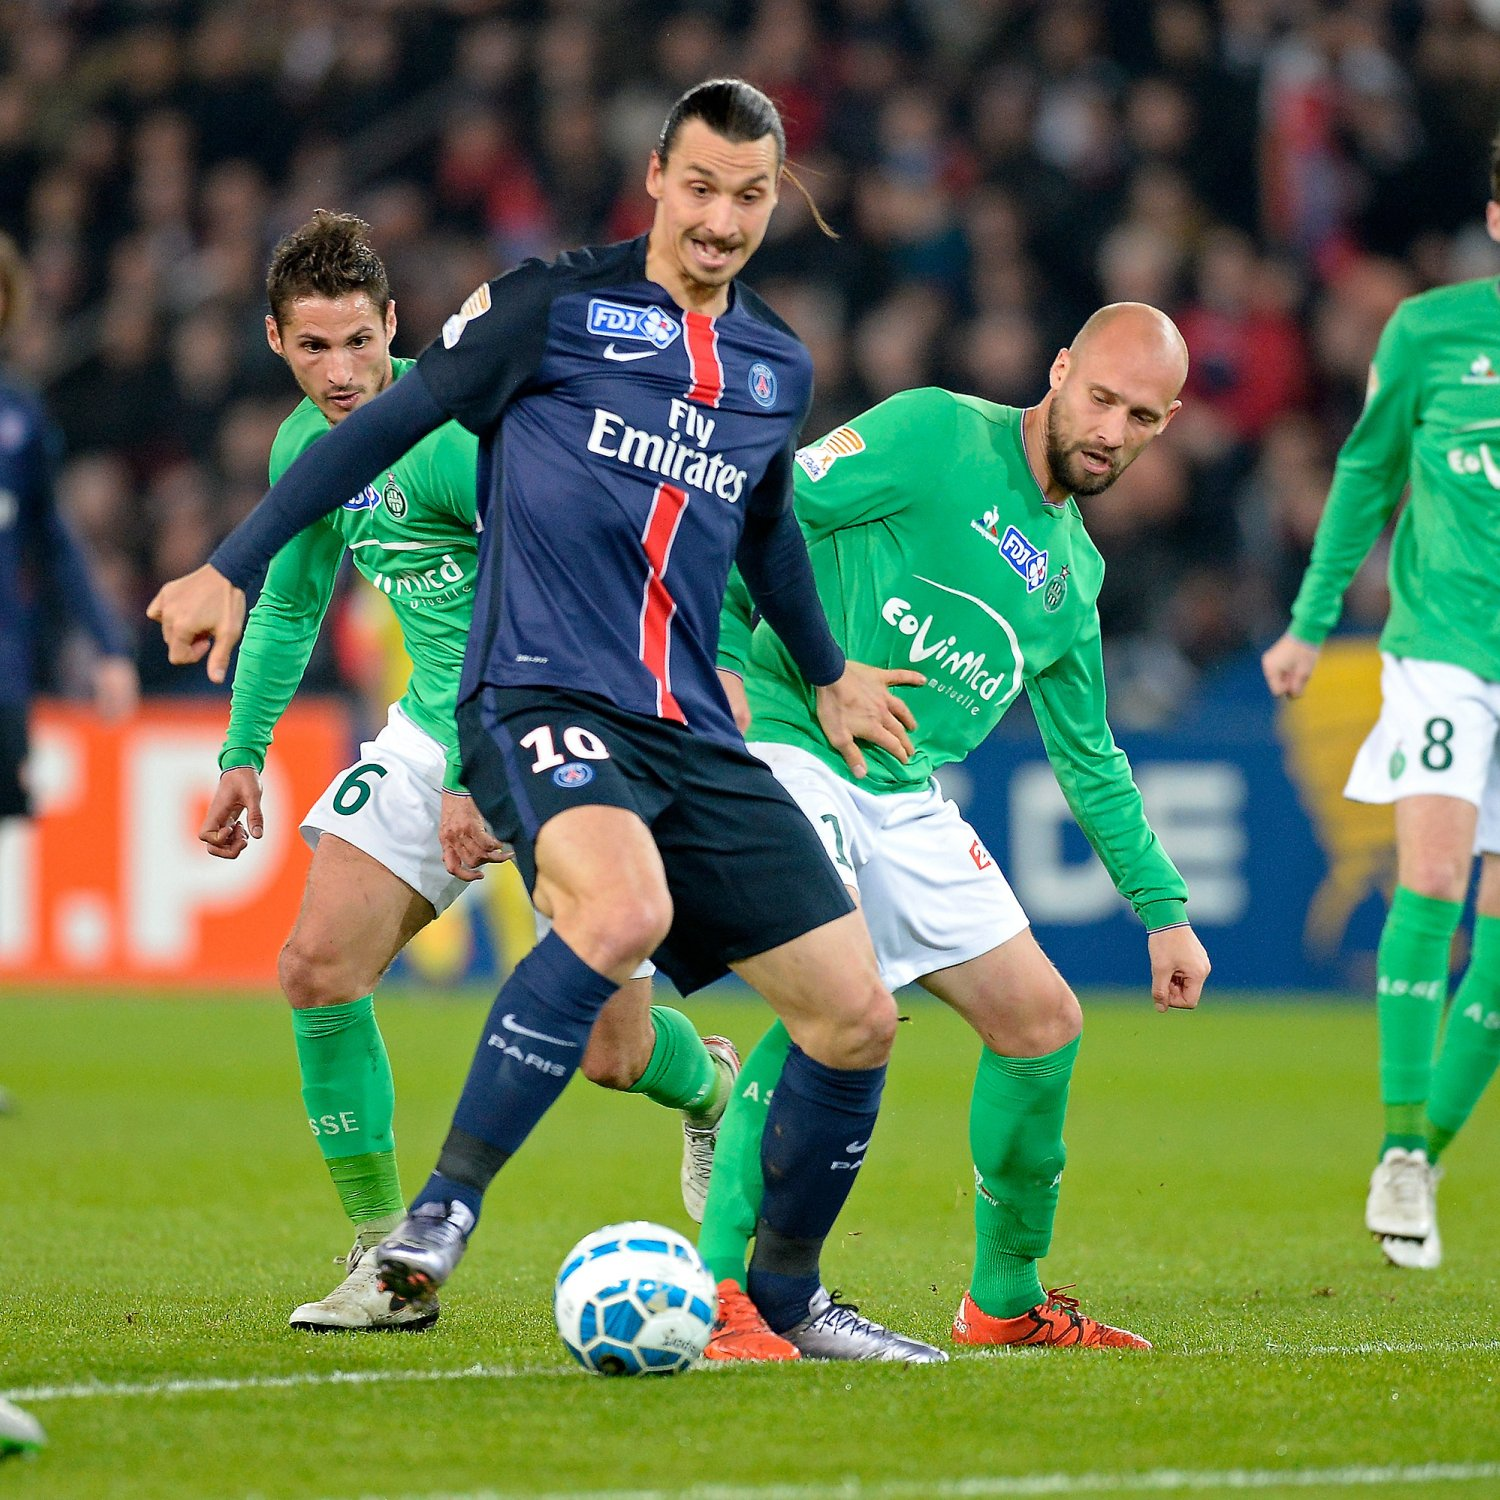 saint etienne vs psg team news predicted lineups live stream and tv info bleacher report. Black Bedroom Furniture Sets. Home Design Ideas